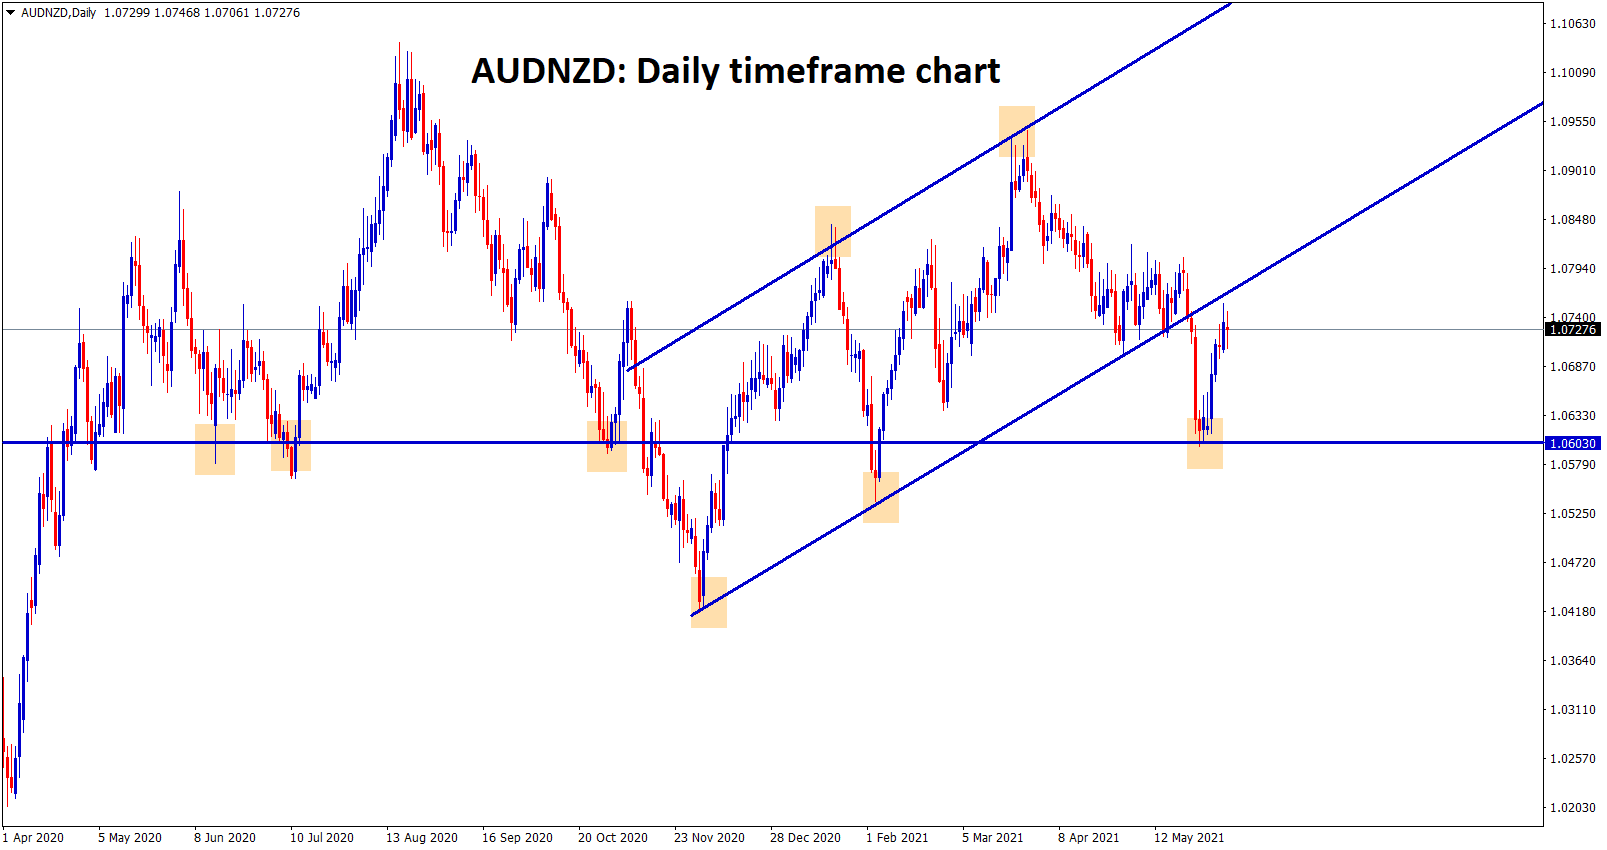 AUDNZD bounced back from the support and reached the retest zone of the broken uptrend line.